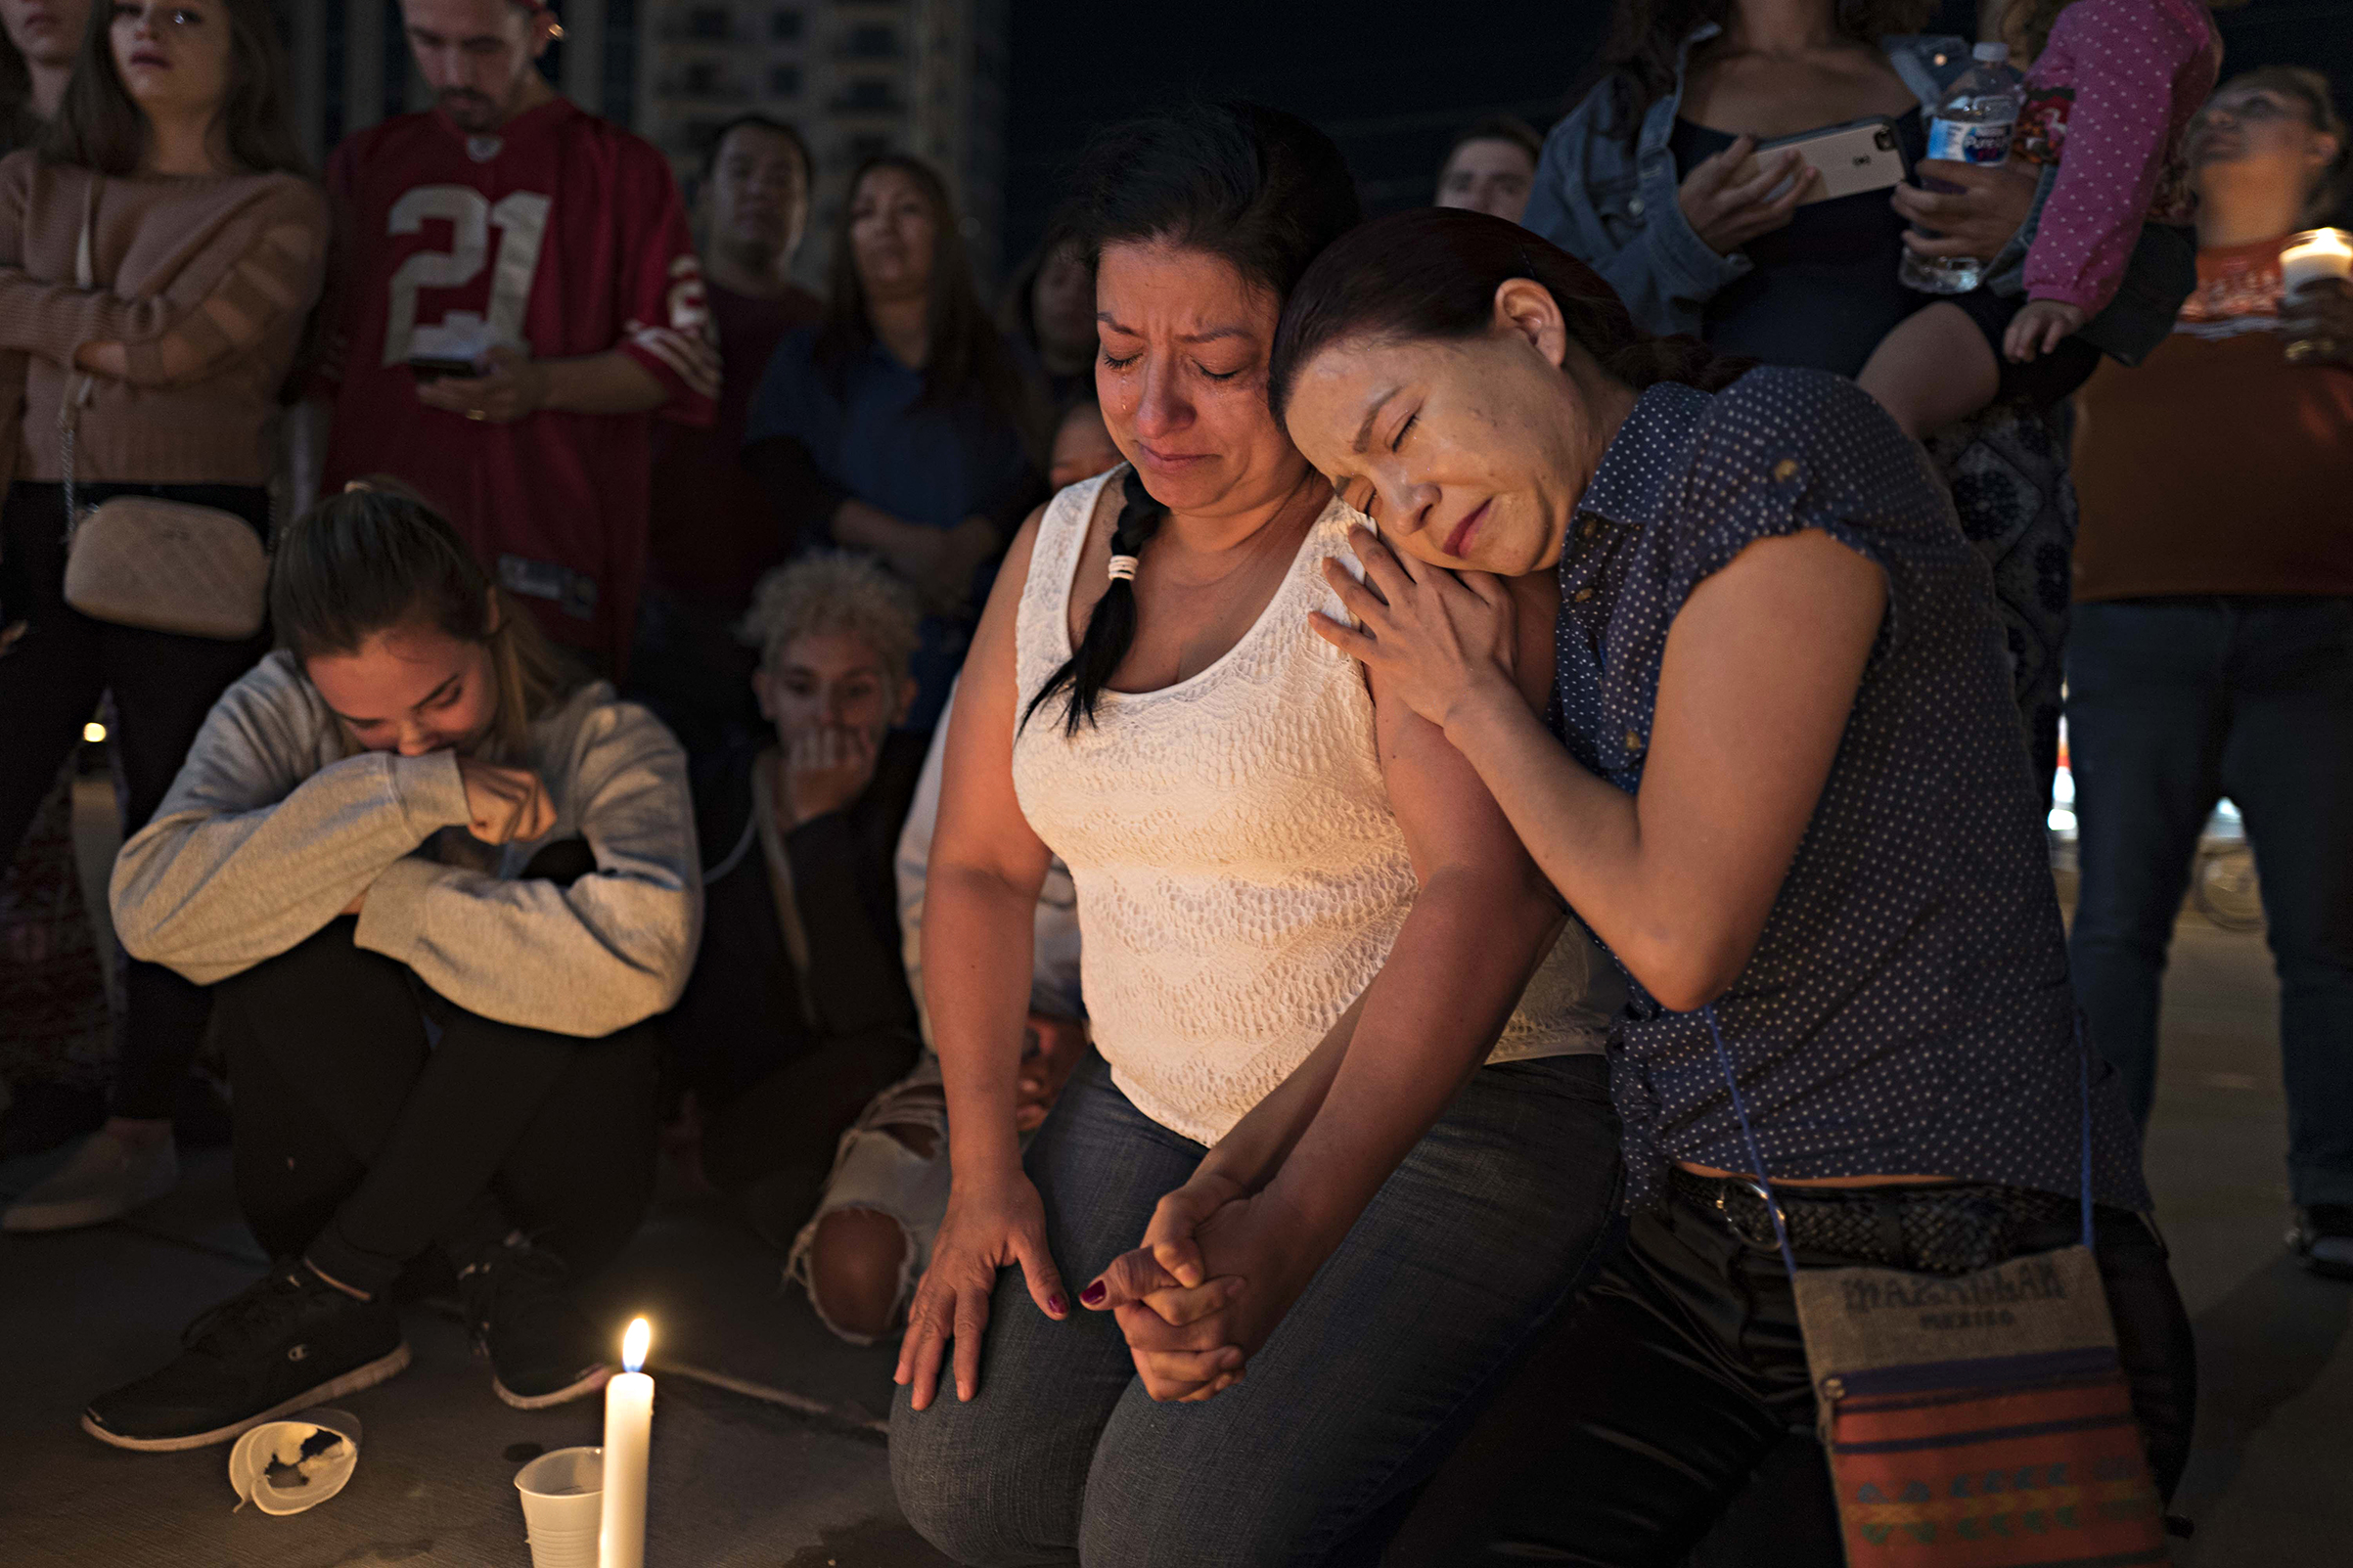 Two women comfort one another at a street vigil, held for victims of the mass shooting at the Route 91 Harvest Festival, Las Vegas, Oct. 2, 2017.